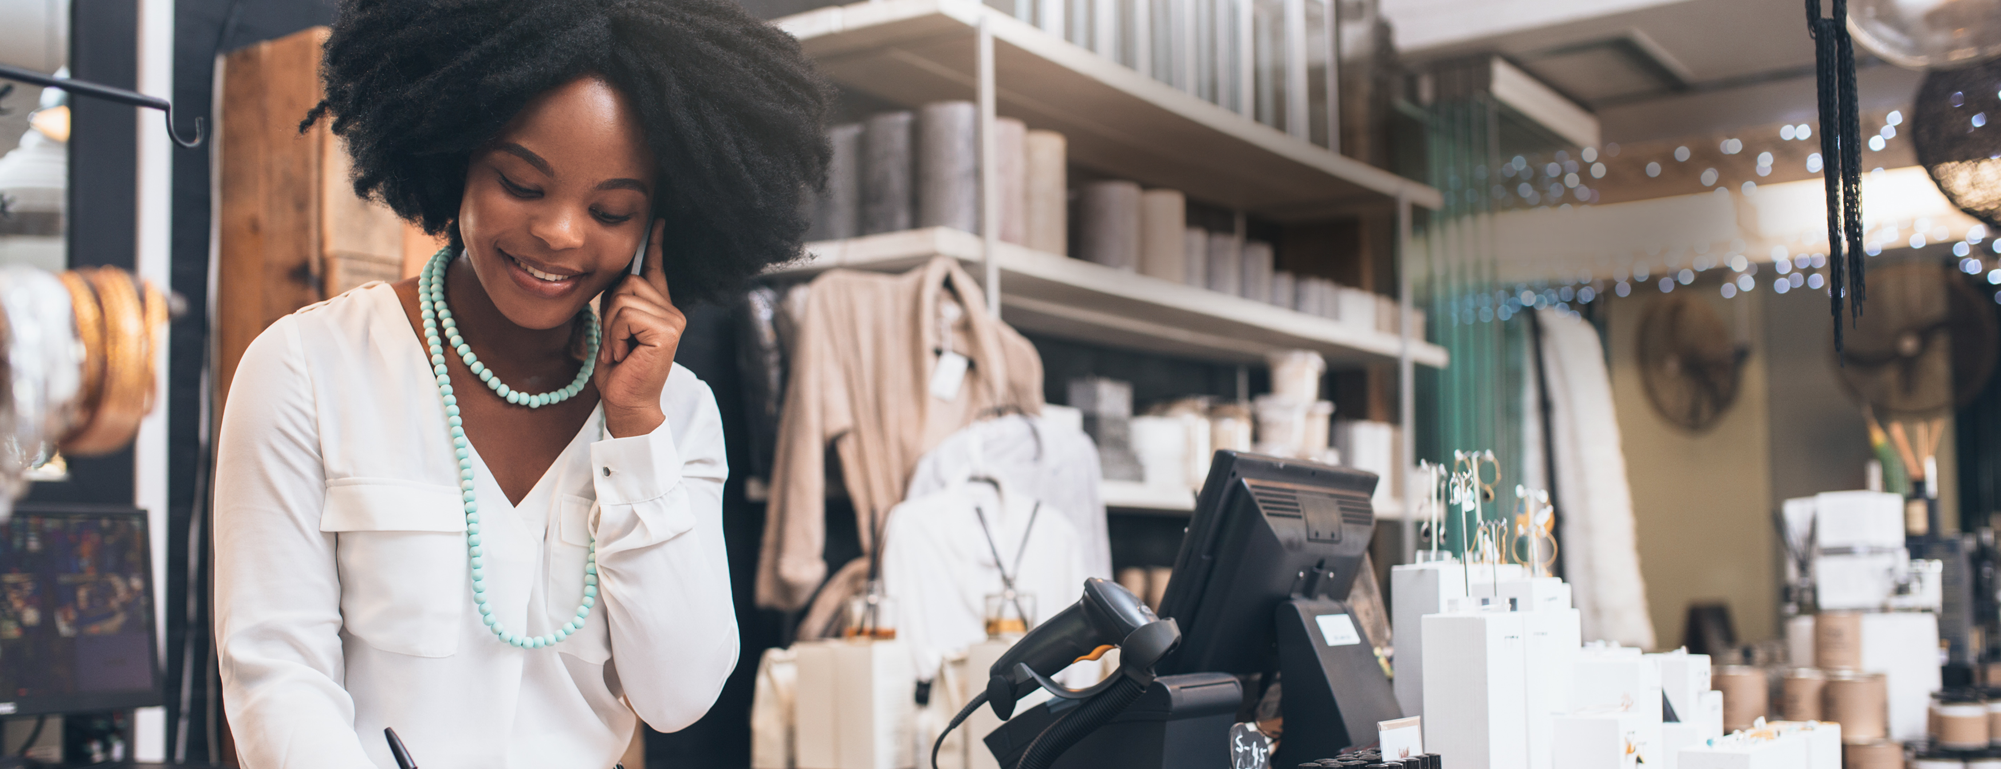 As mobile shopping has redefined retail, here are six ways your business can benefit.